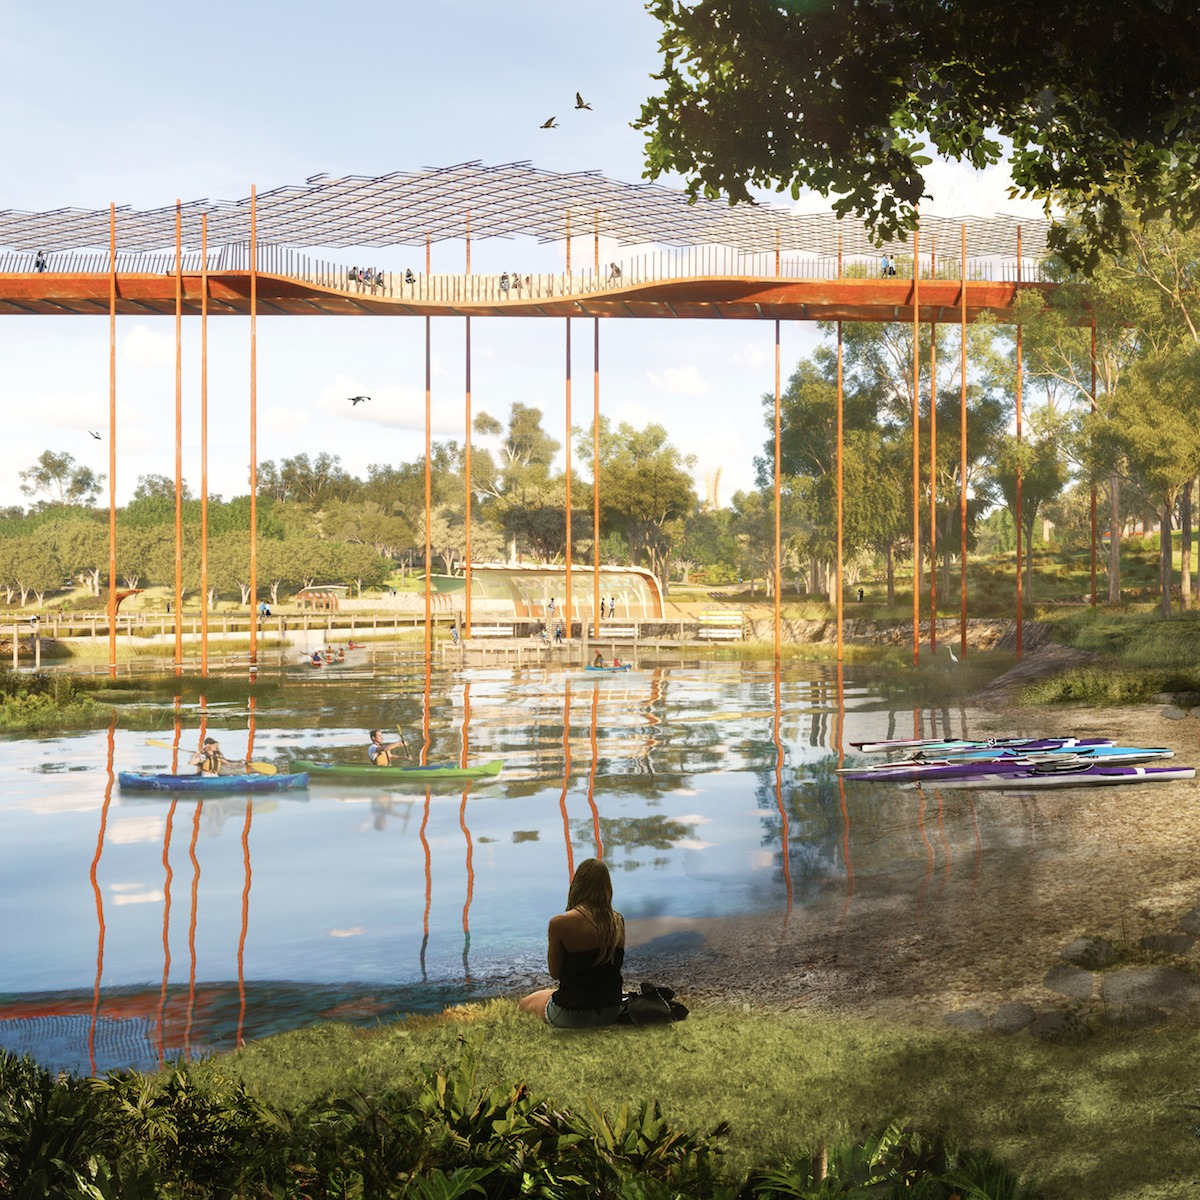 render of a lagoon area in the park